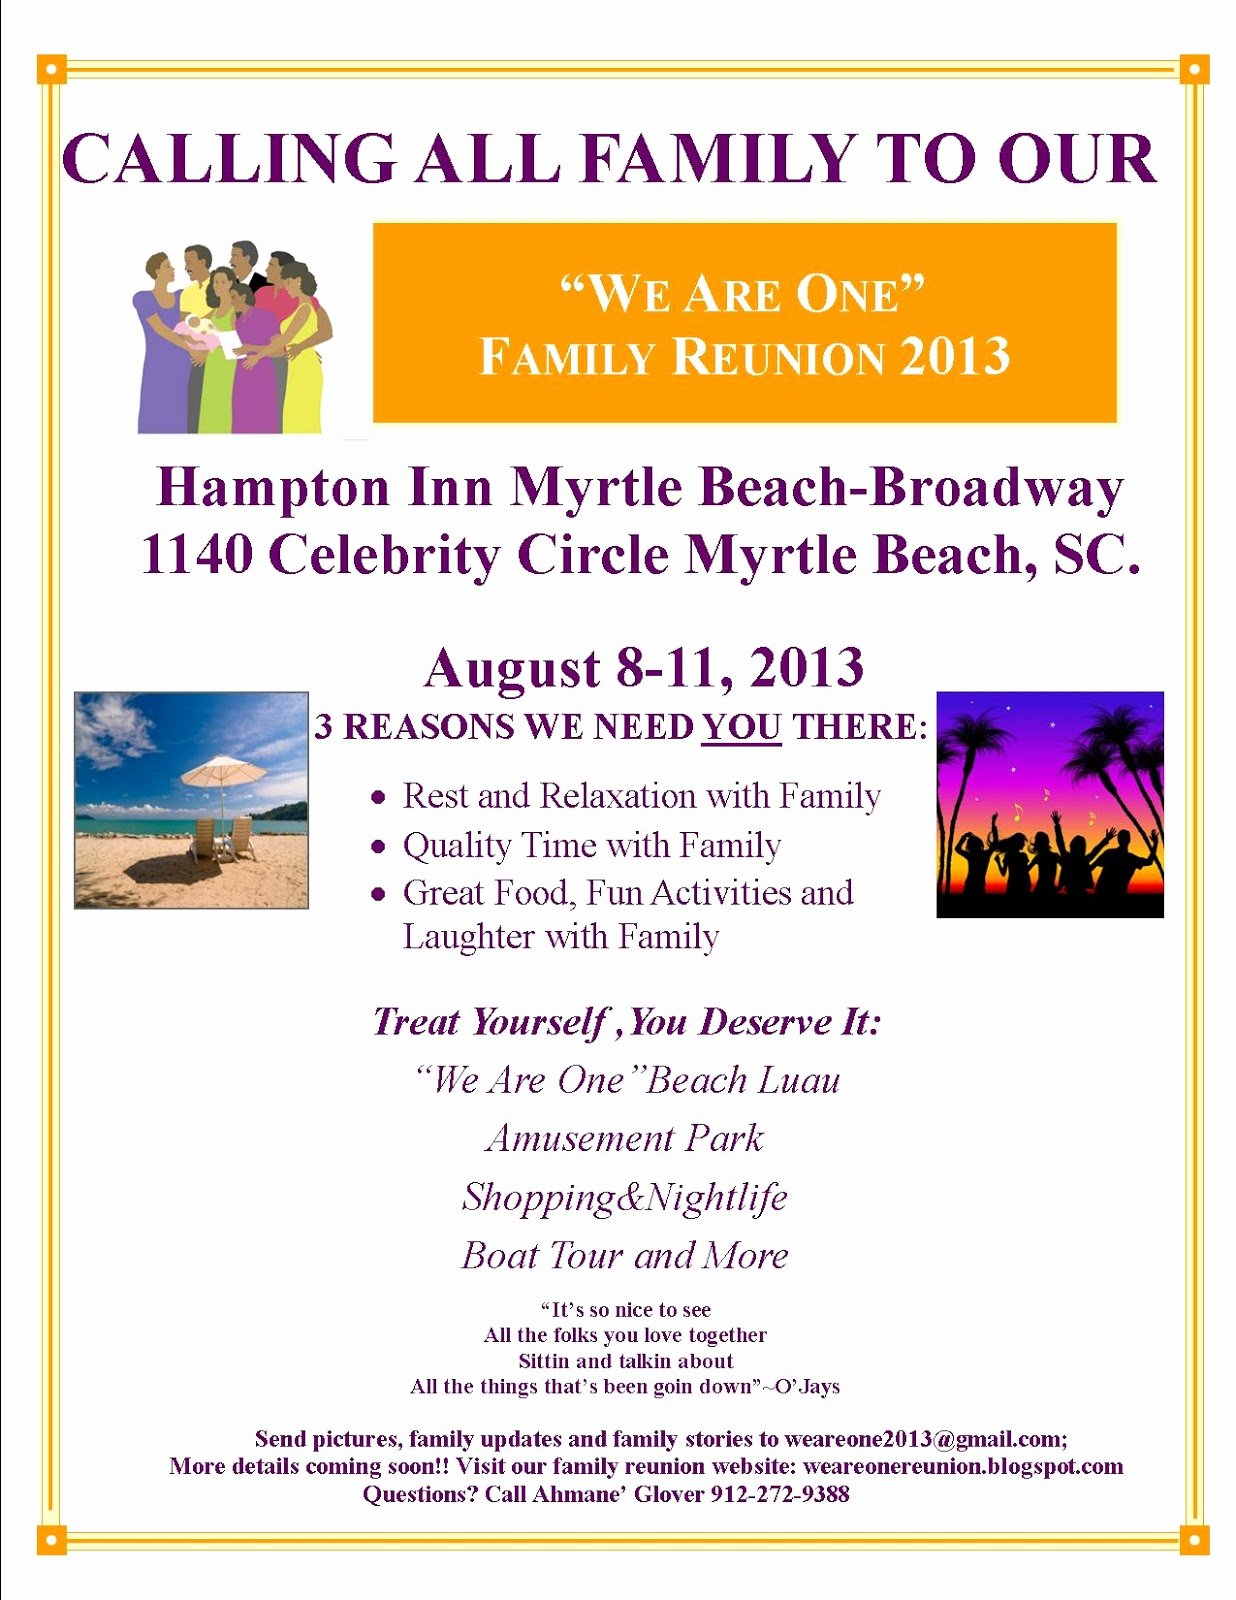 Family Reunion Flyer Template Awesome We are E Family Reunion